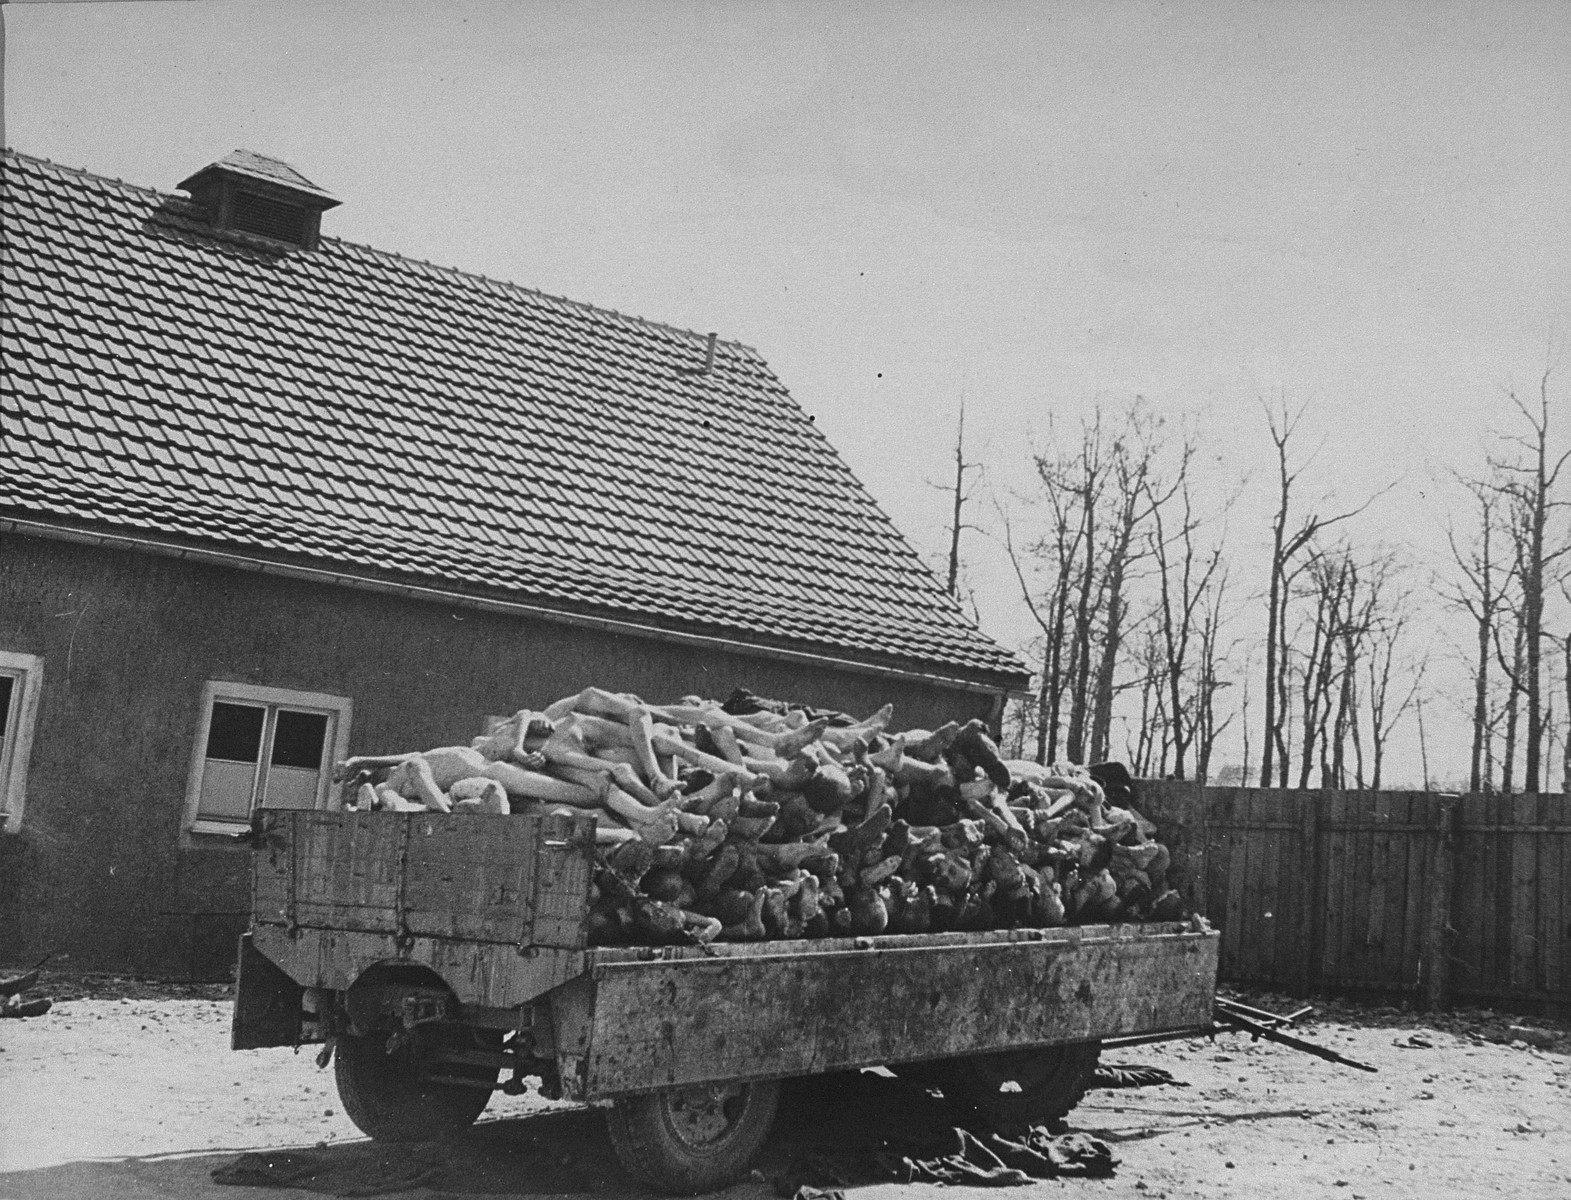 A wagon is piled high with the bodies of former prisoners in the newly liberated Buchenwald concentration camp.